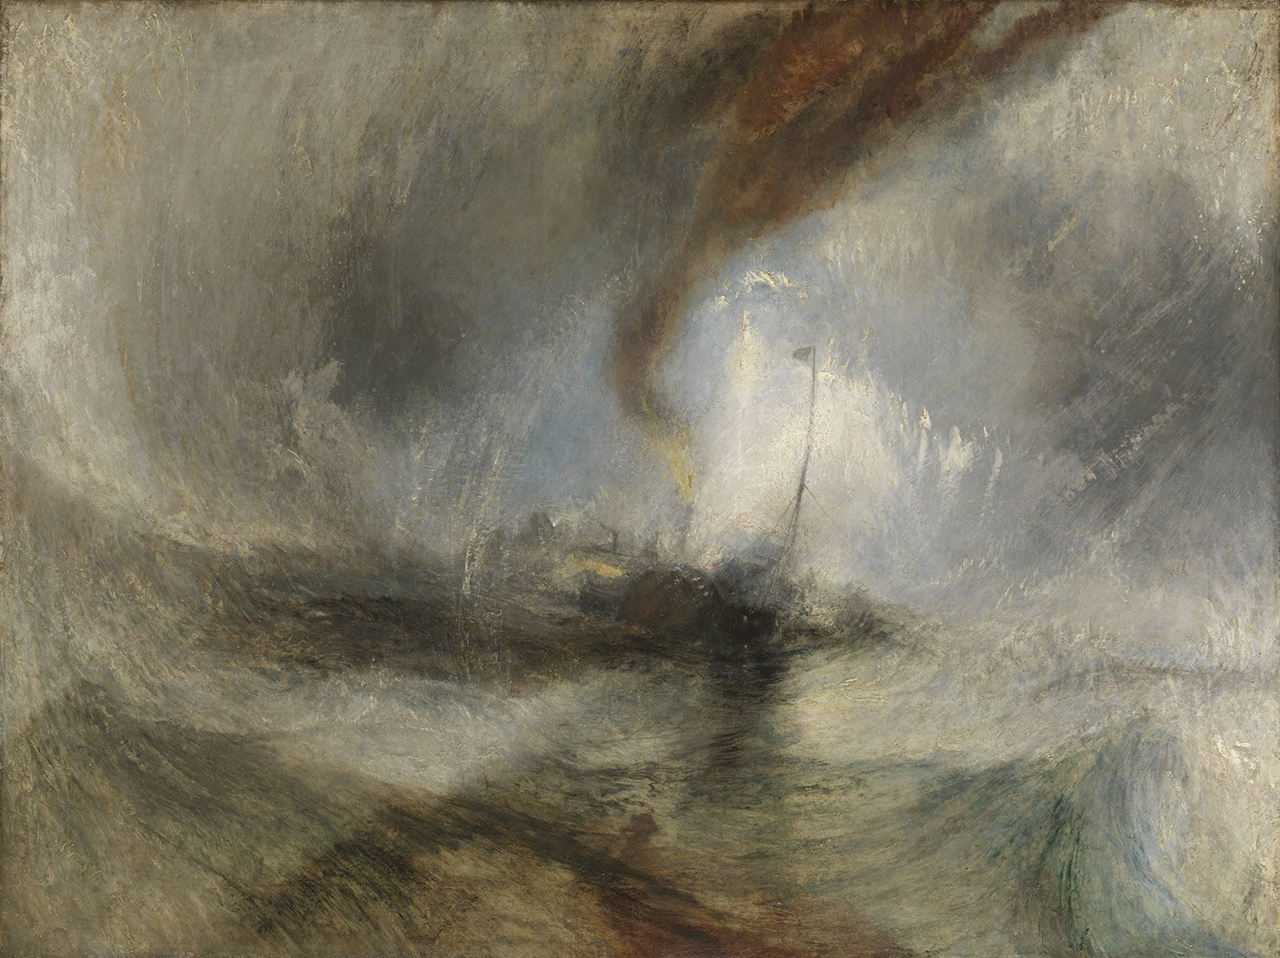 """Joseph Mallord William Turner, """"Snow Storm: Steam-Boat off a Harbour's Mouth"""" (exhibited 1842), oil on canvas, unframed: 91.4 x 121.9 cm (36 x 48 in.) (Tate: Accepted by the nation as part of the Turner Bequest 1856 Photo © Tate, London 2014) (all images courtesy Getty Museum)"""